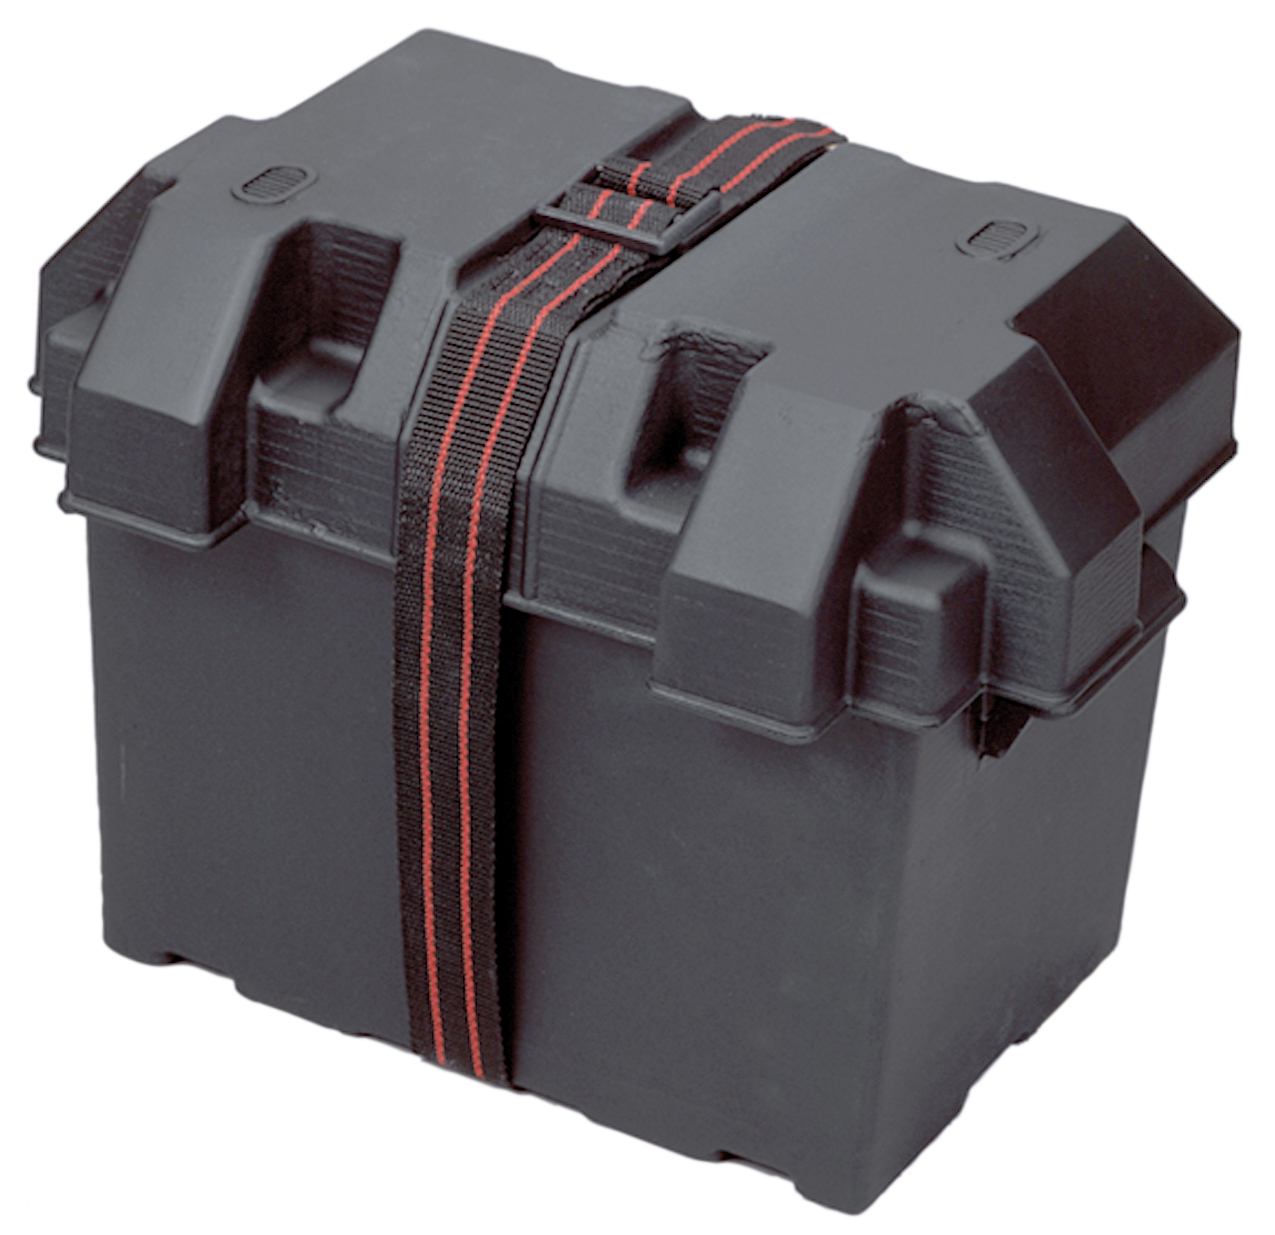 13035 Powerhouse Battery Box Fits Group 27 Batteries